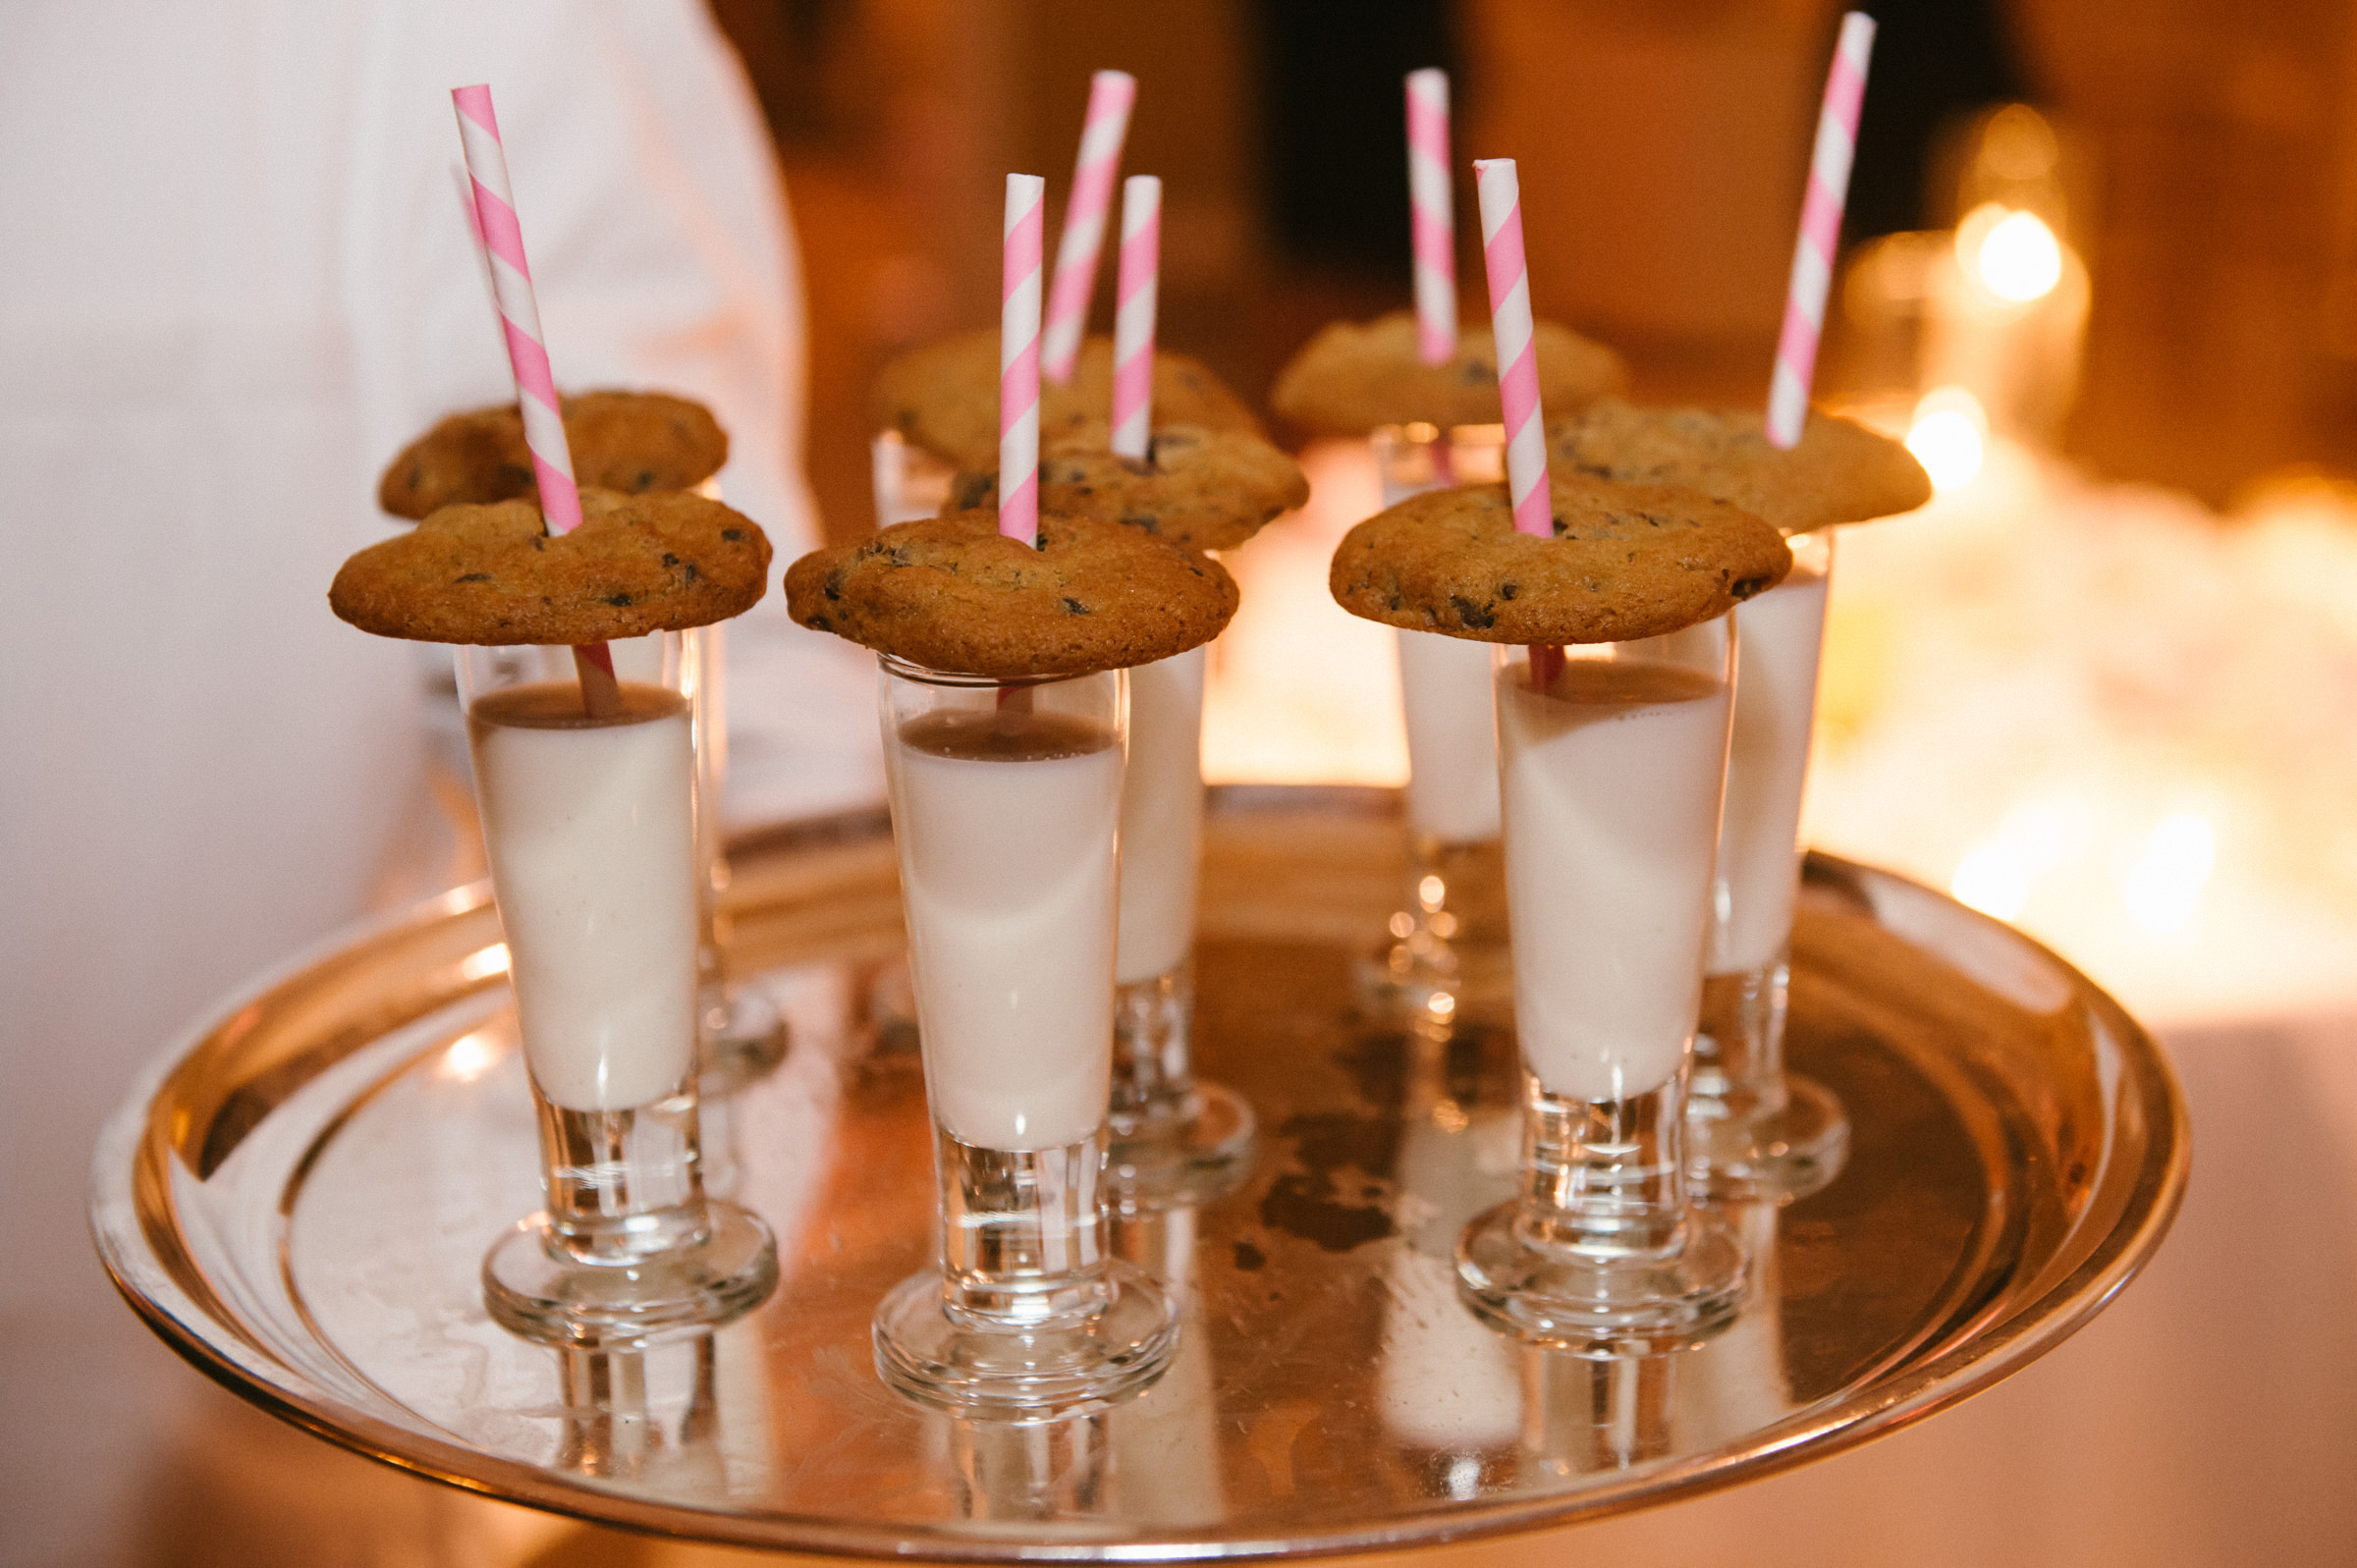 reception-dessert-menu-vanilla-parfaits-with-chocolate-chip-cookies-on-silver-tray-amyandstuart-photography